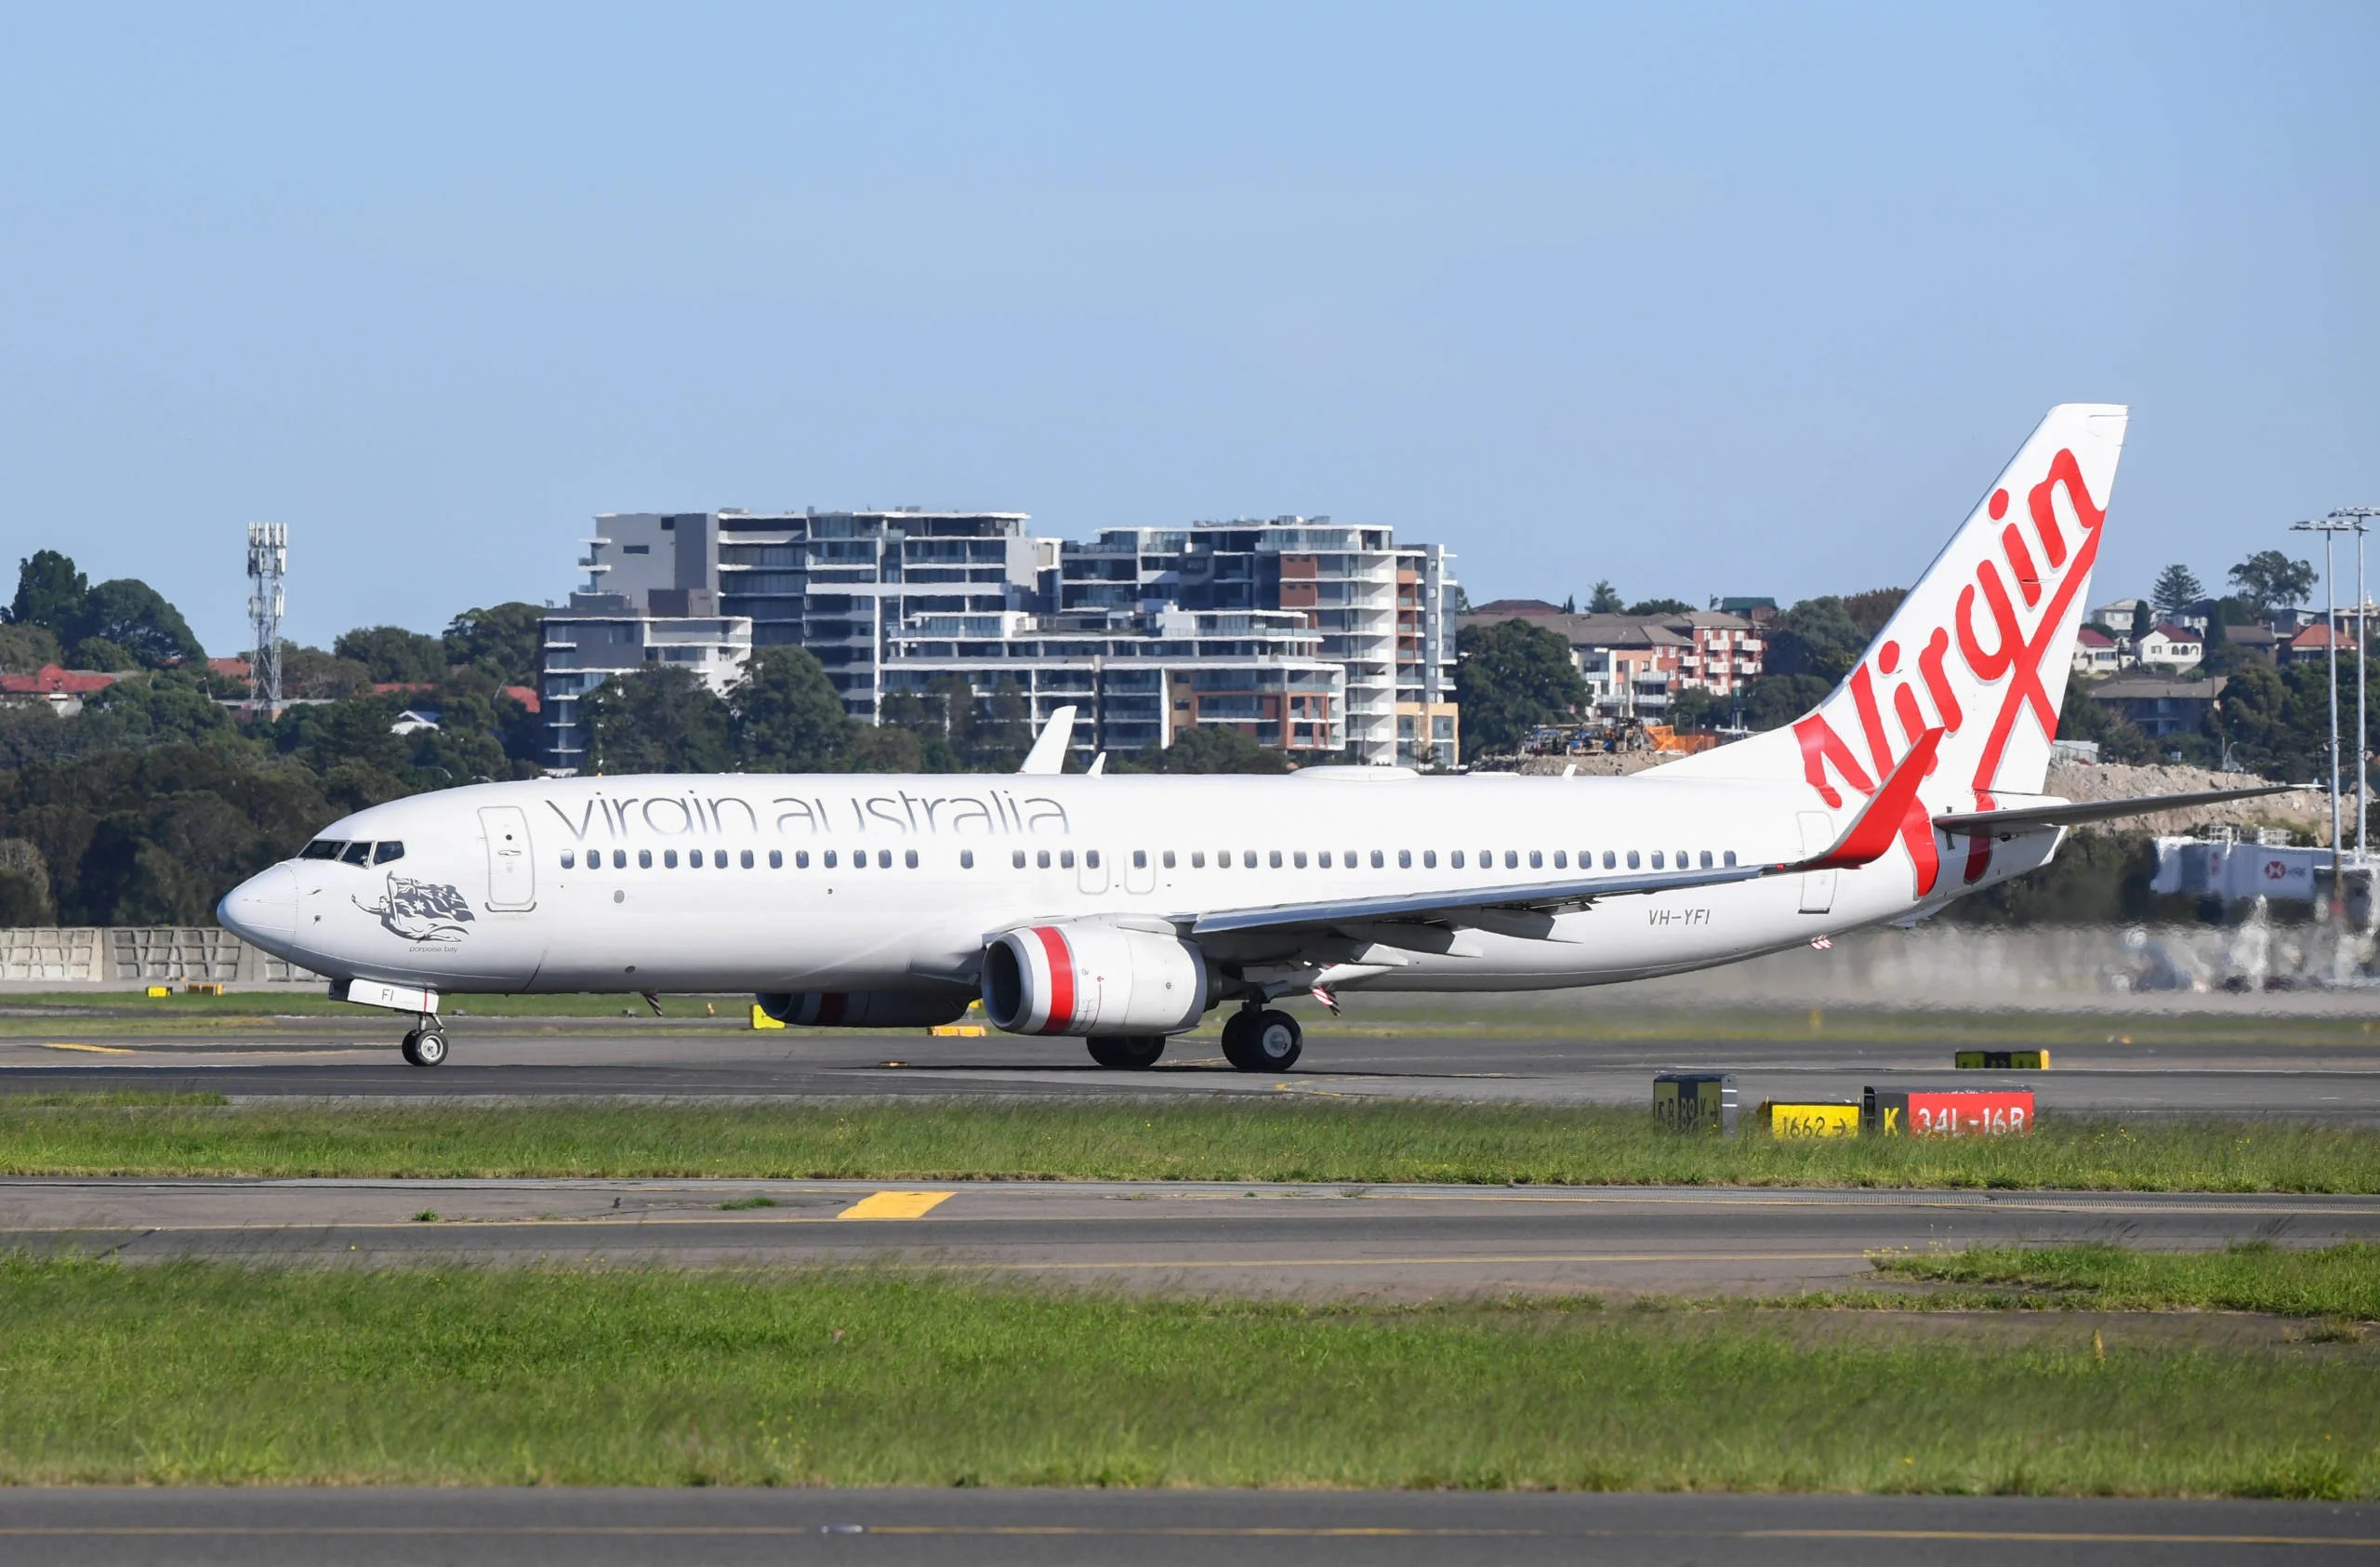 Virgin Australia continues flying as it enters administration